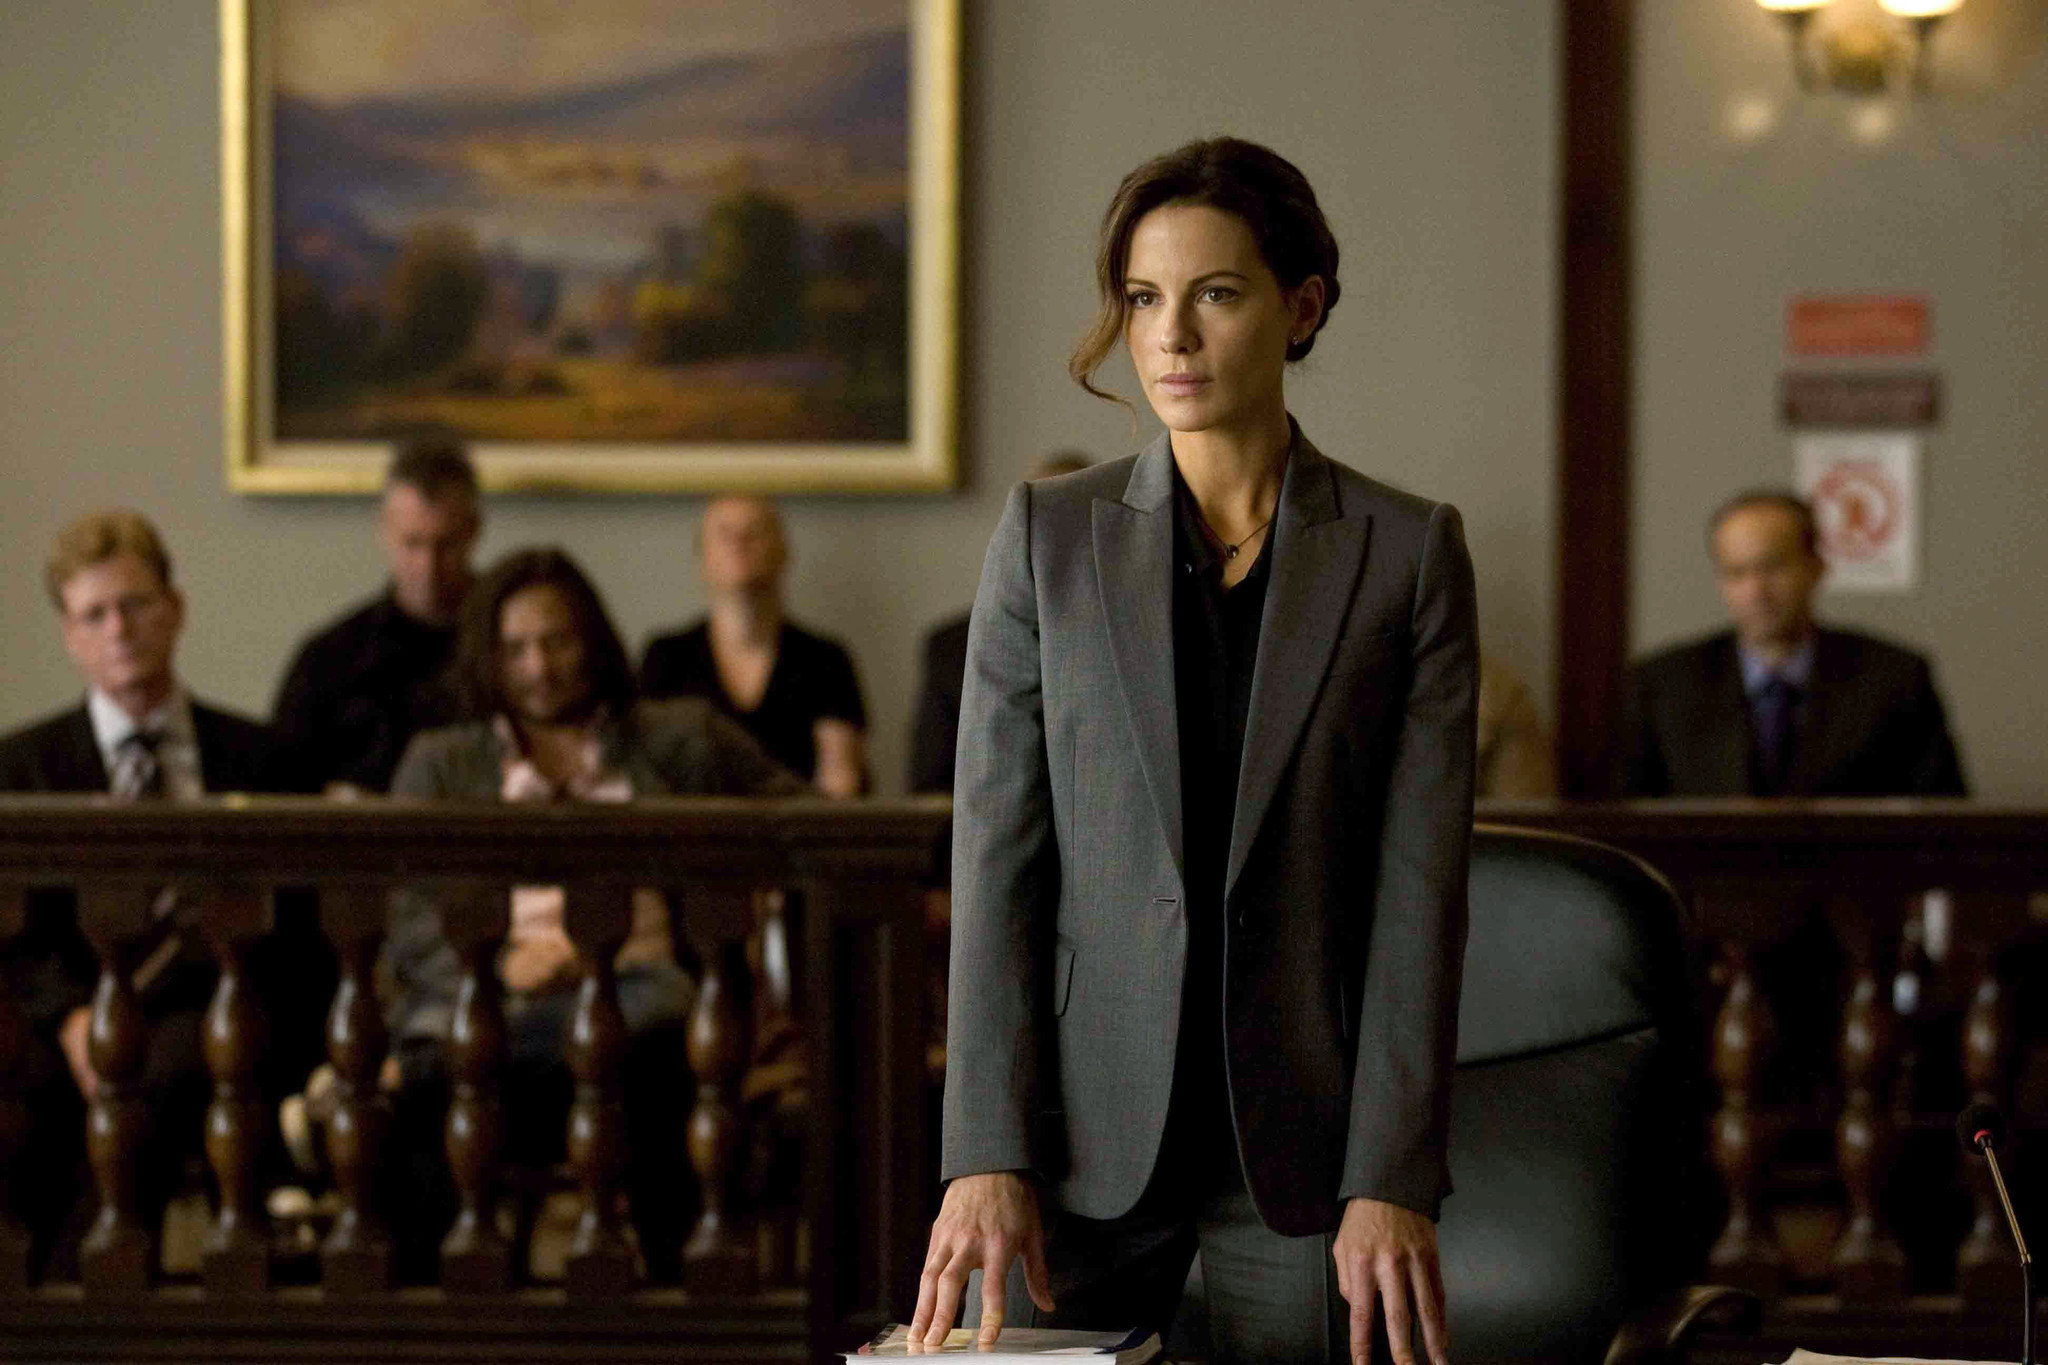 Kate Beckinsale in The Trials of Cate McCall